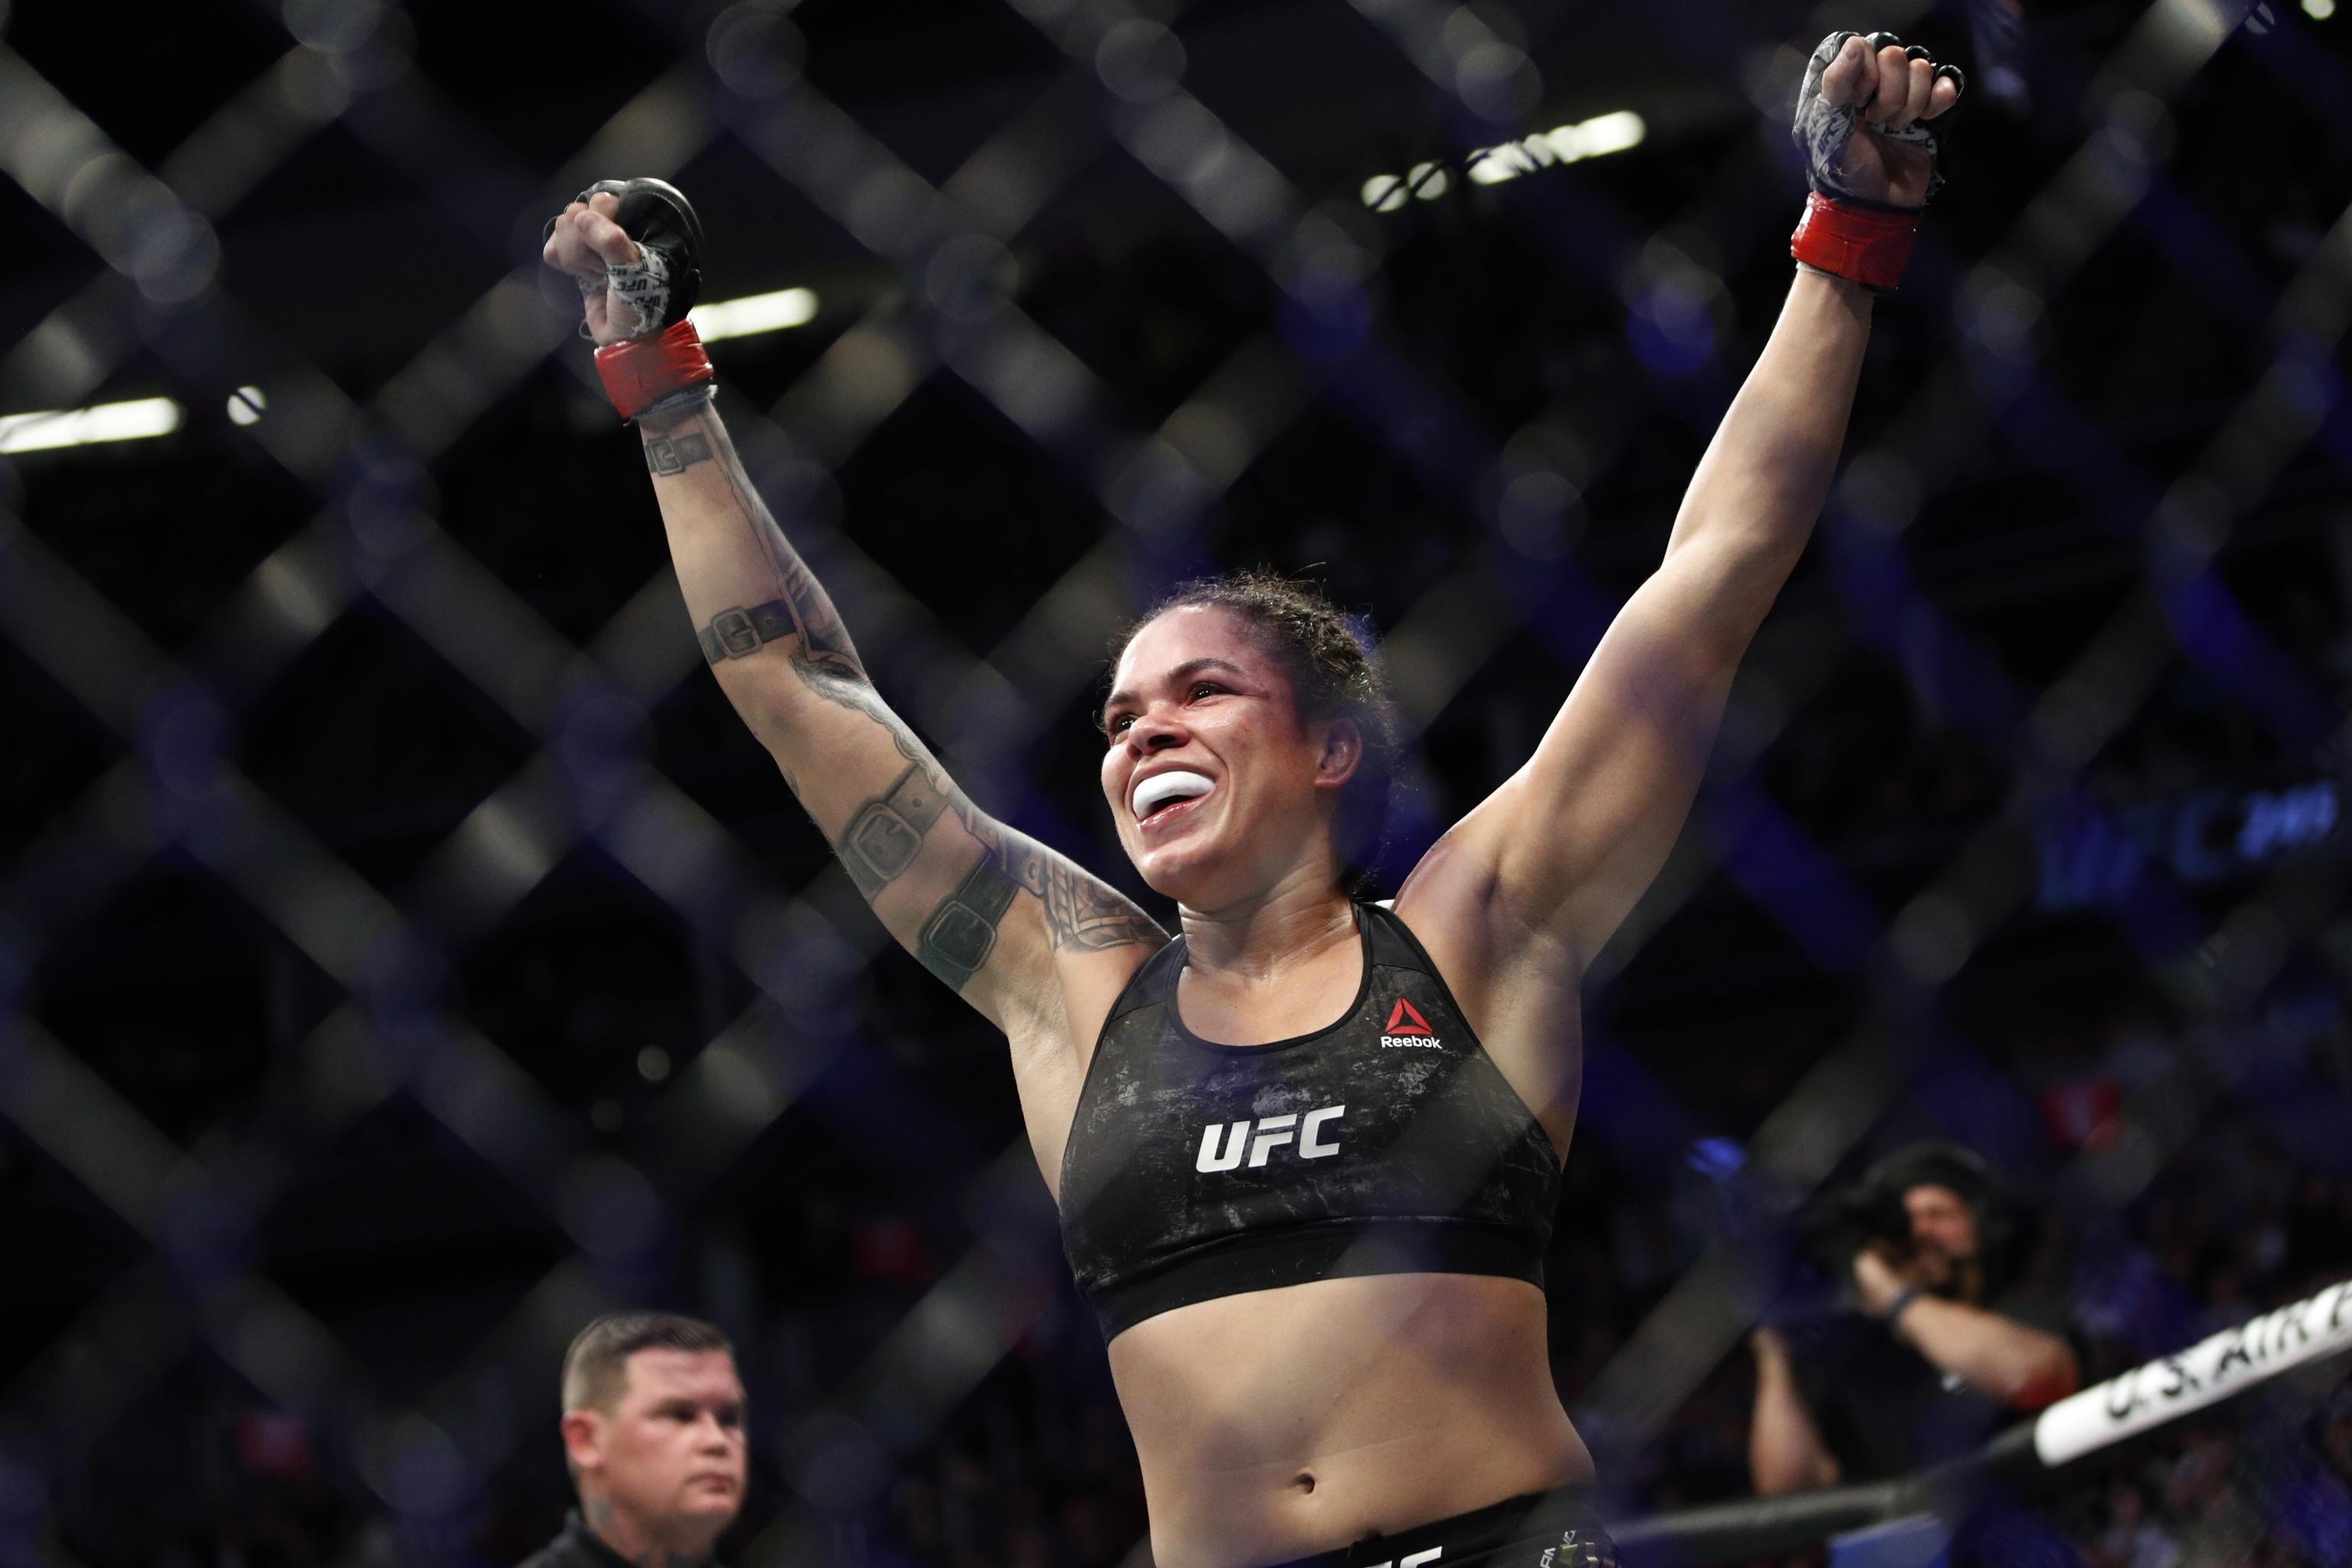 Amanda Nunes Vs Megan Anderson Fight At Ufc 256 Reportedly Scratched From Card Bleacher Report Latest News Videos And Highlights